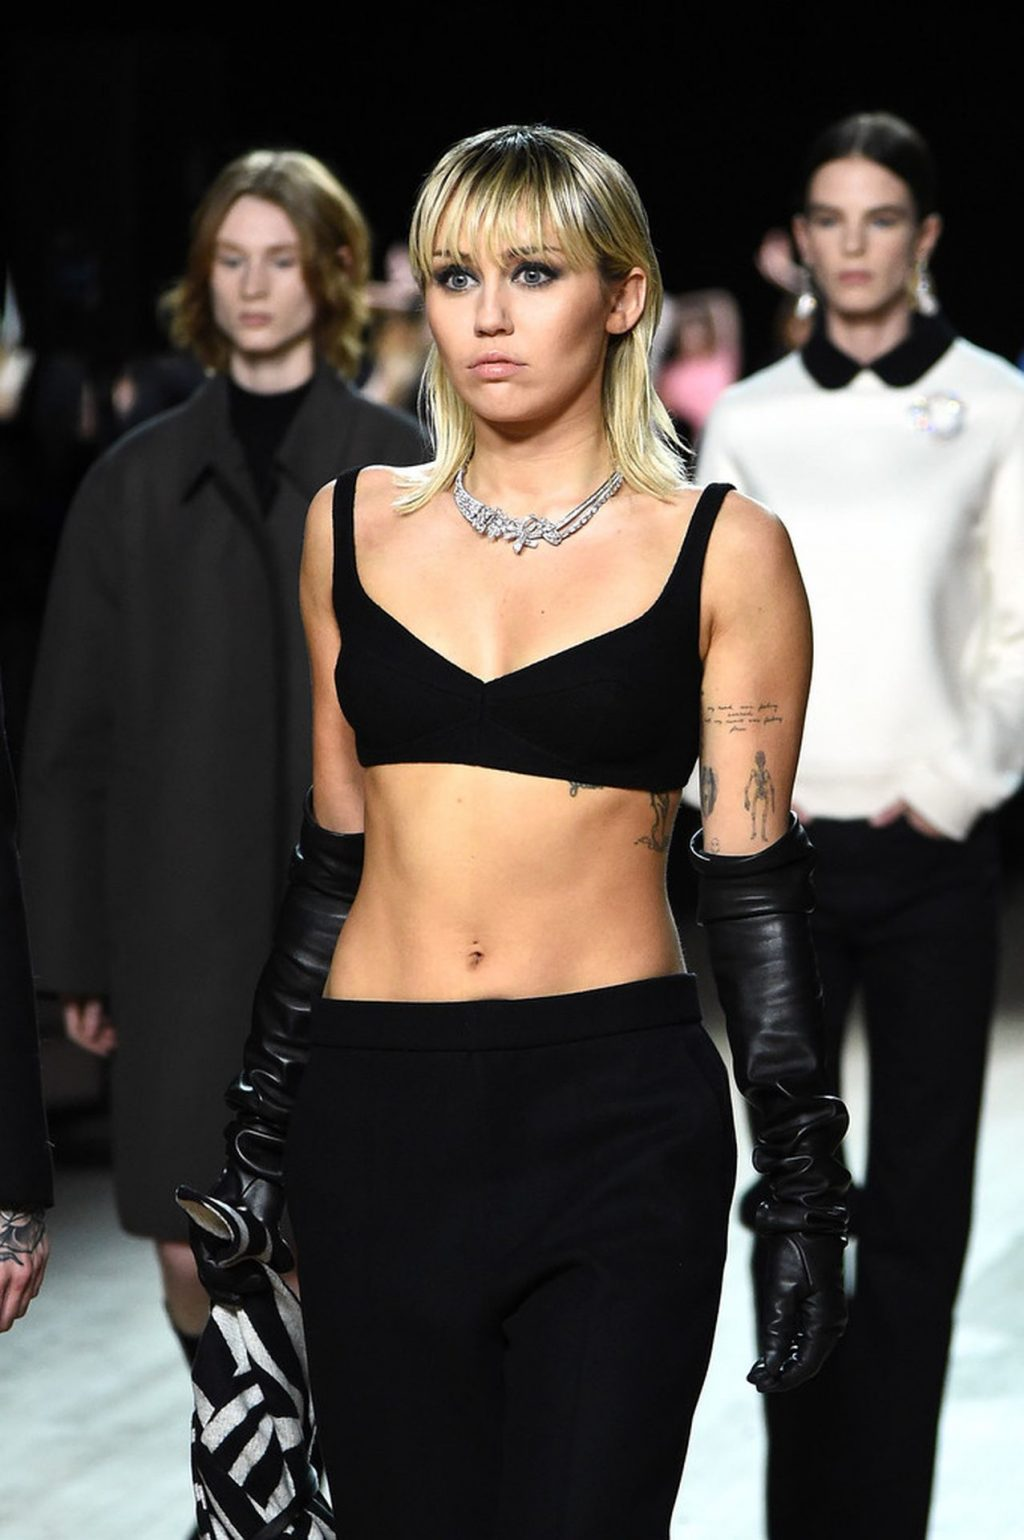 Miley Cyrus Sexy The Fappening Blog 7 4 1024x1540 - Miley Cyrus Walks the Runway at the Marc Jacobs Show (22 Photos + GIF & Video)